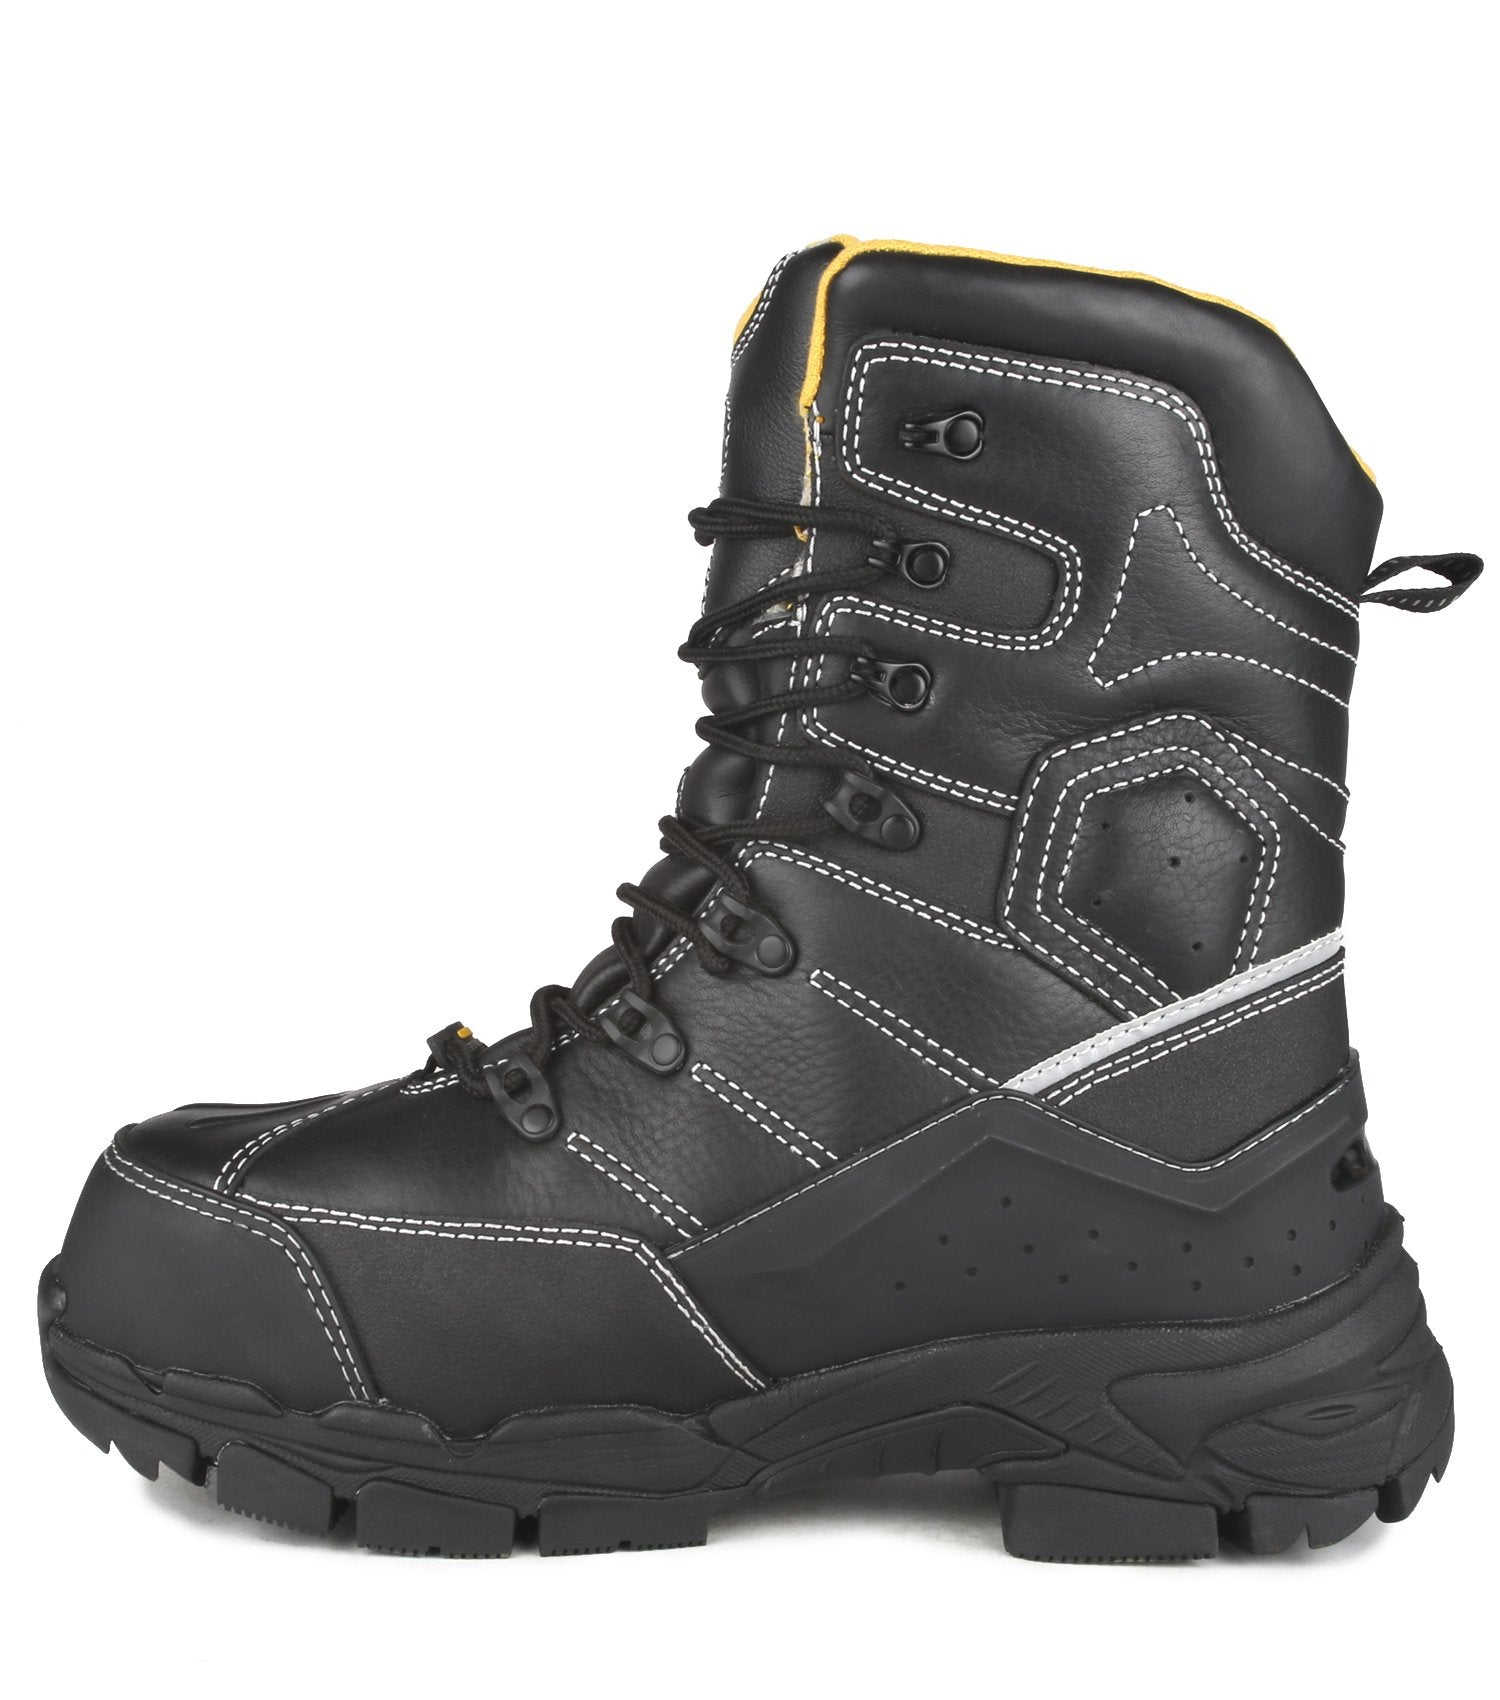 Winter Security Boots